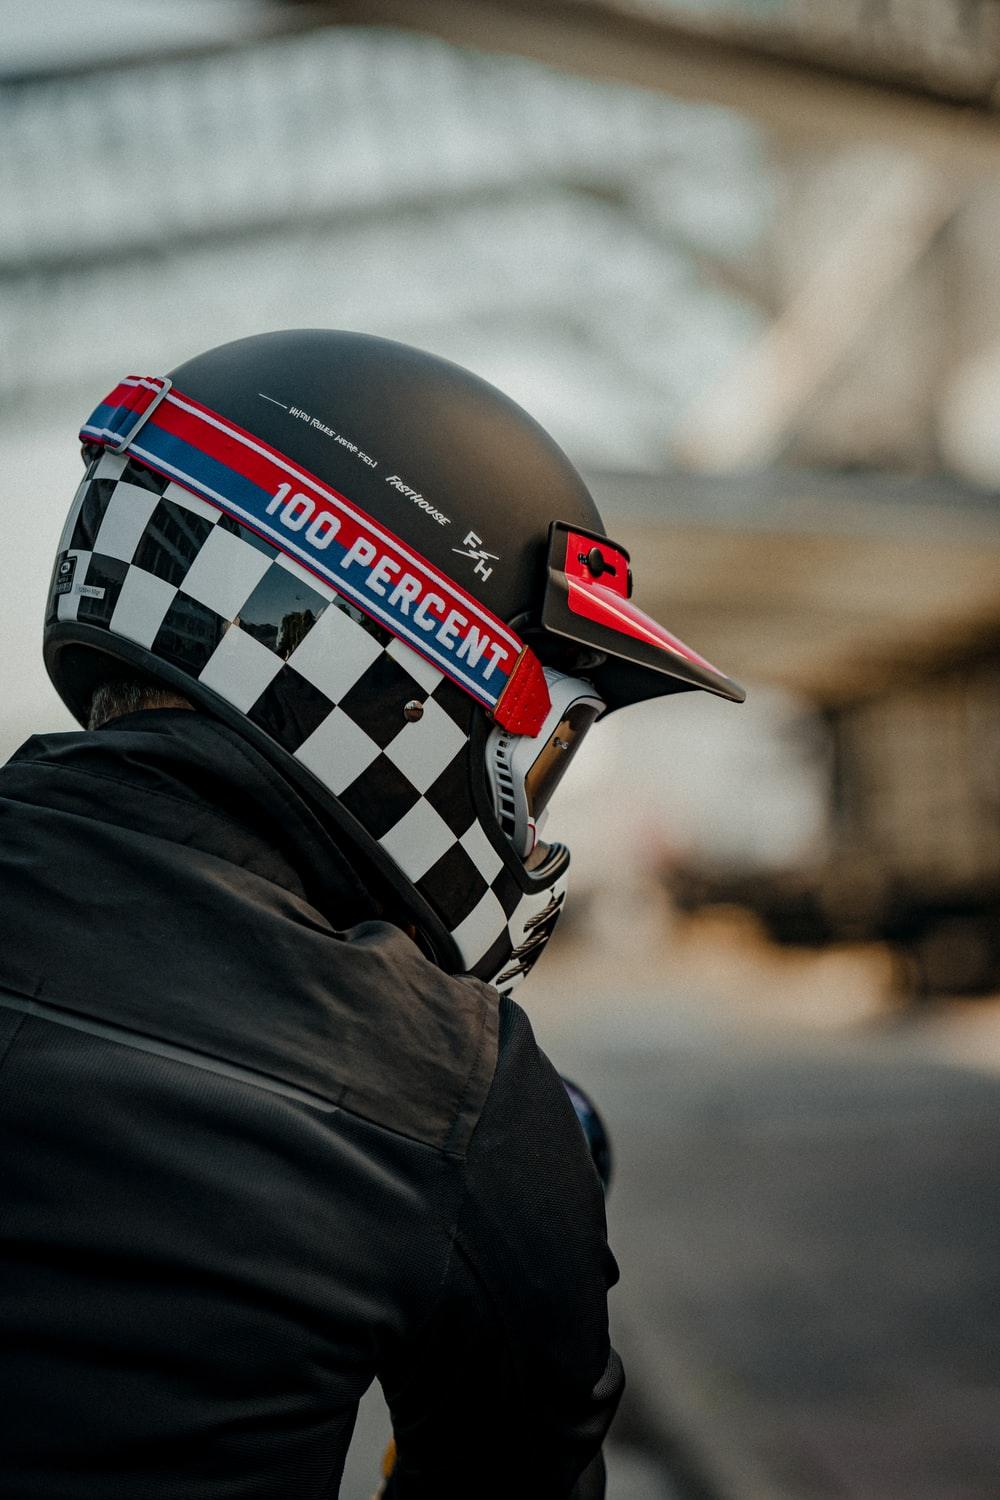 person wearing black and white helmet